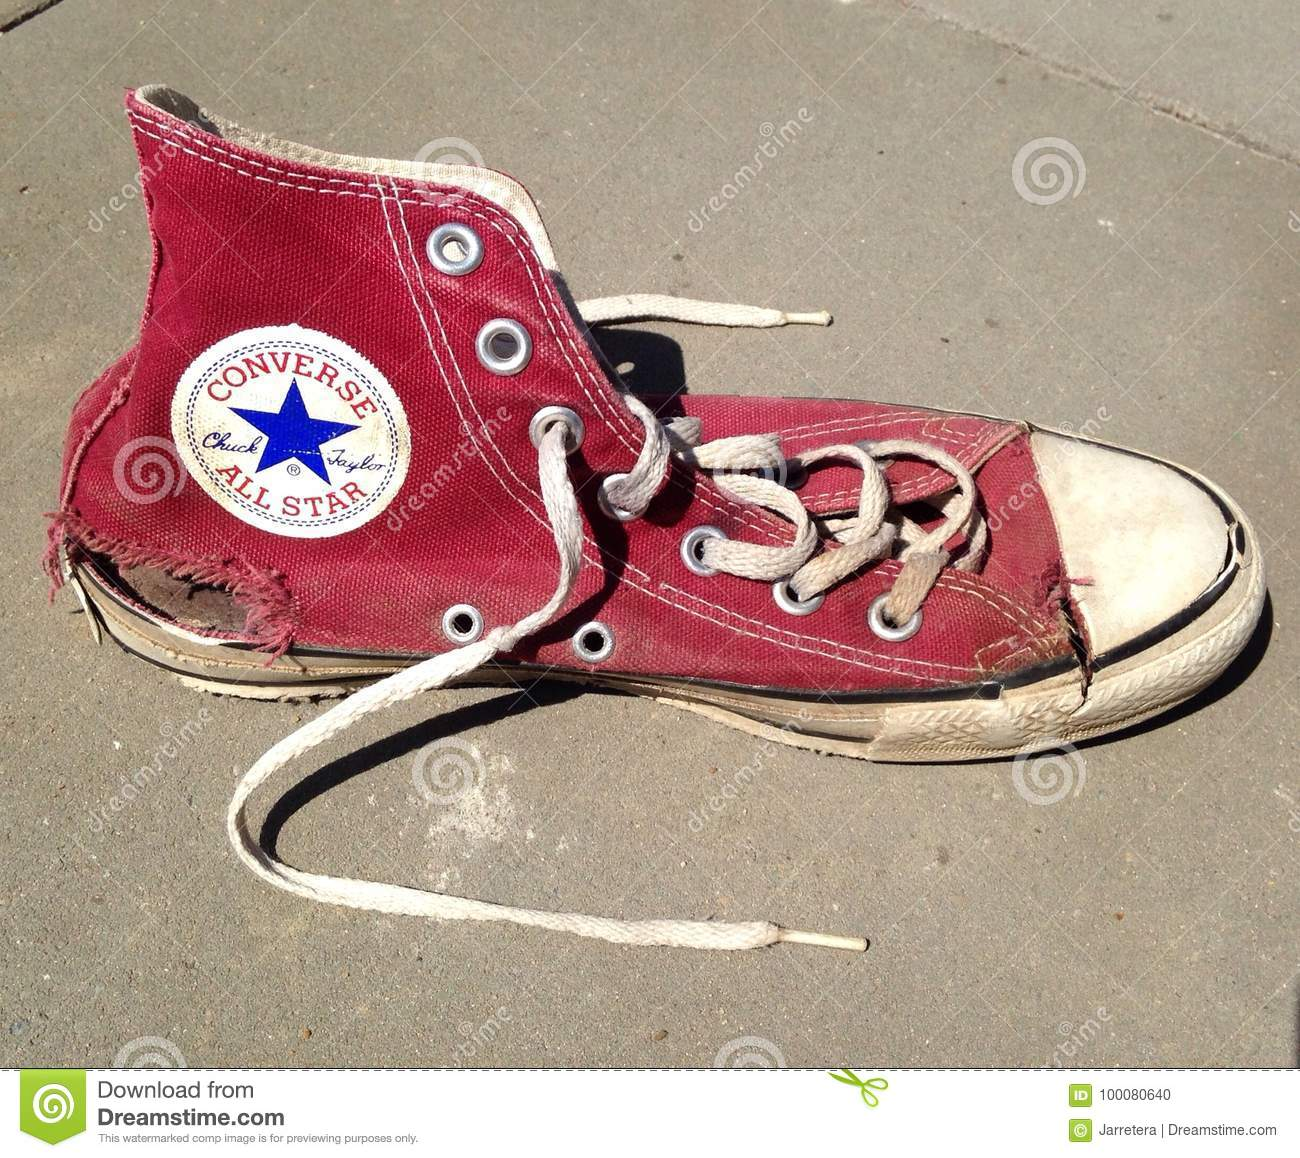 converse used